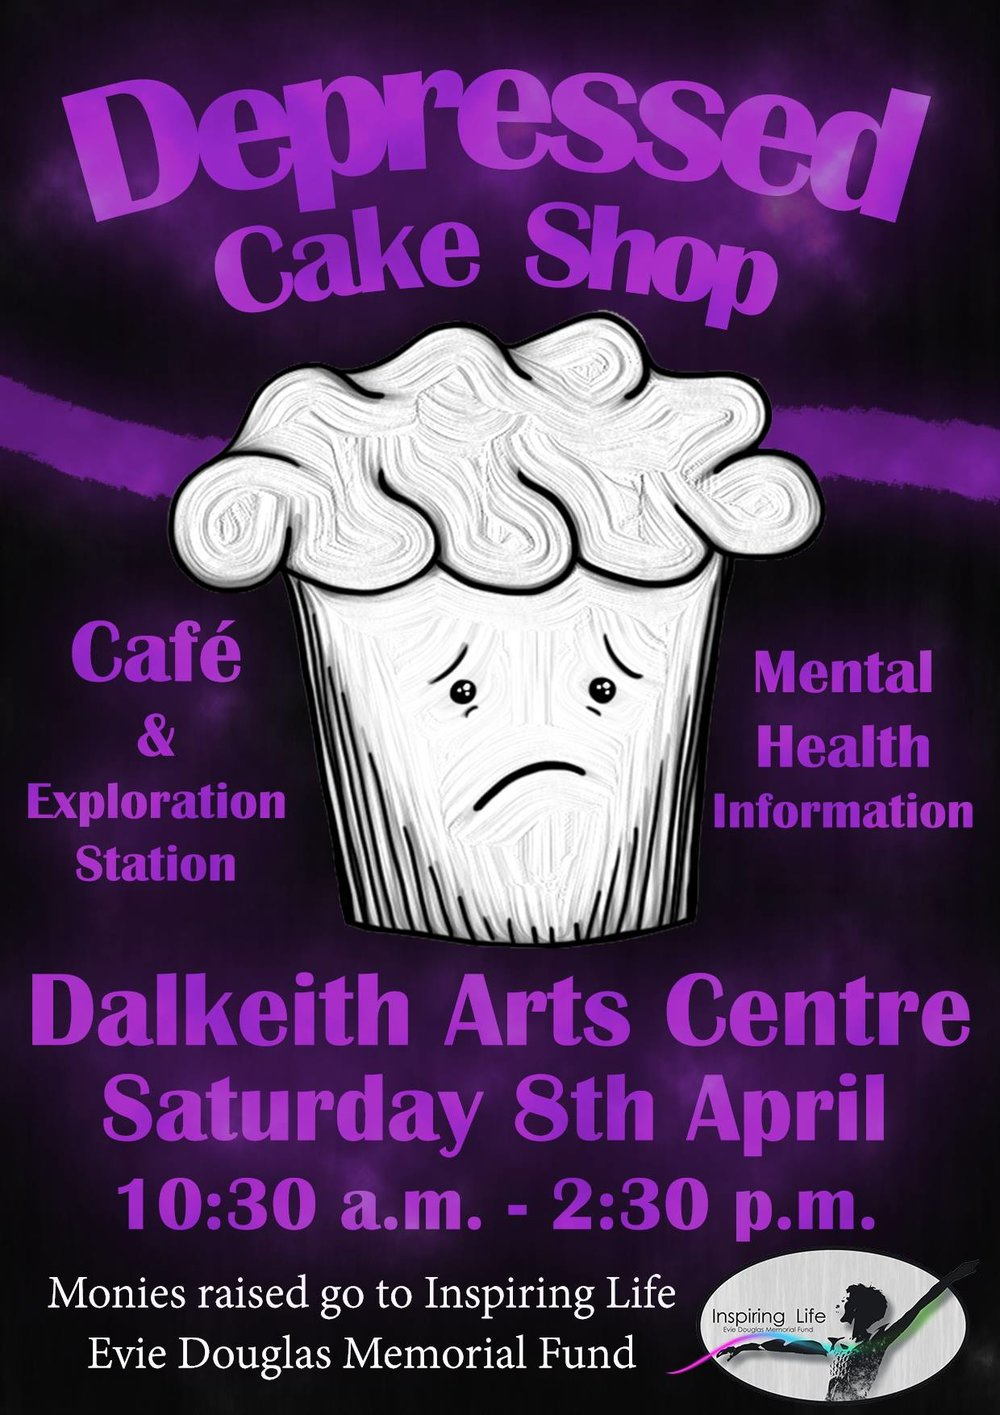 depressed cake shop scotland.jpg